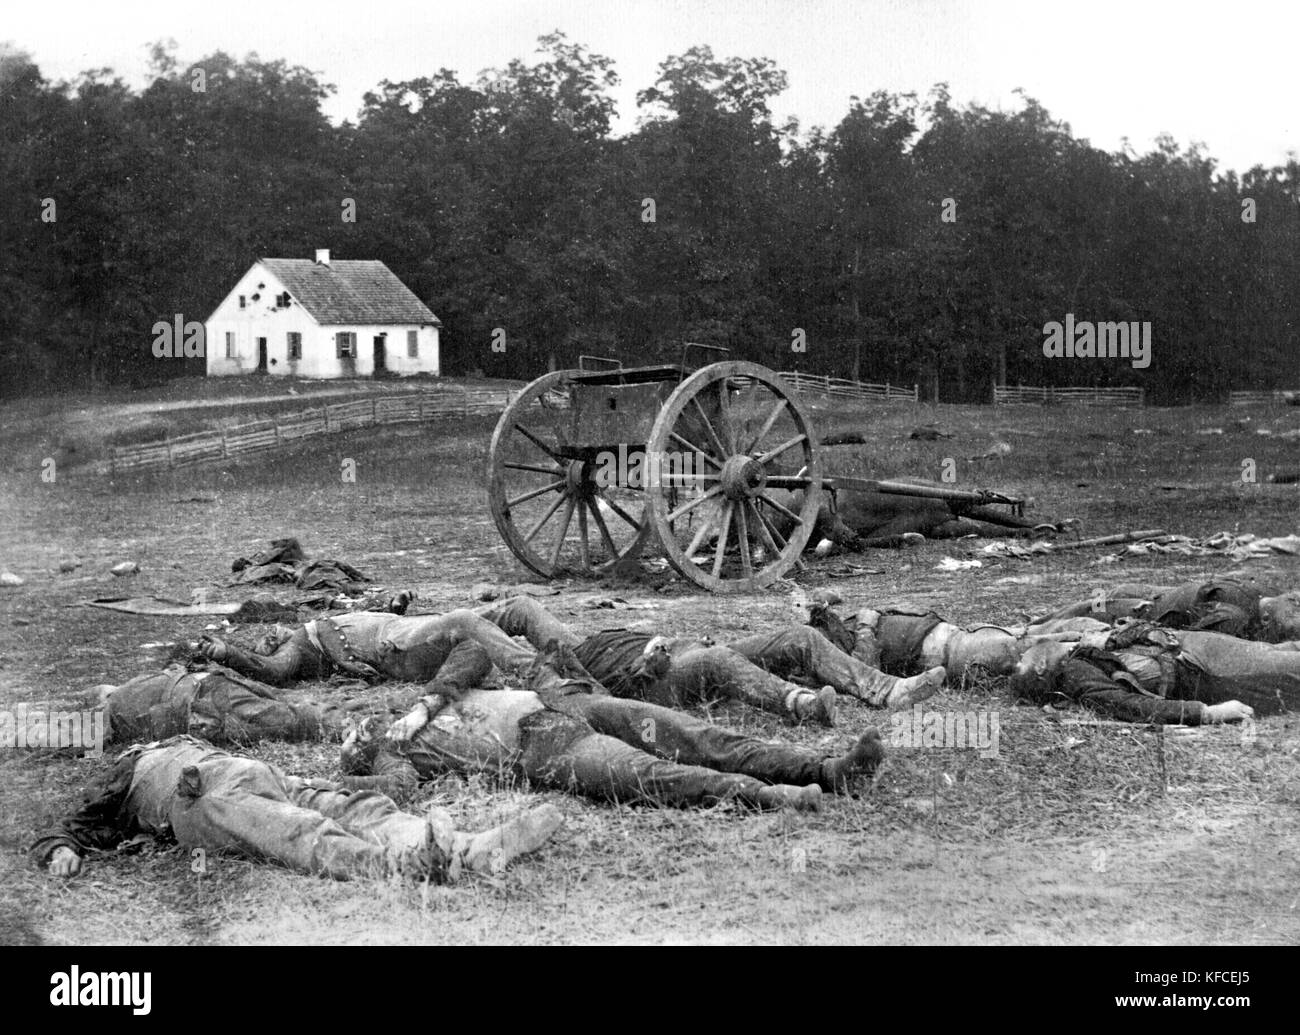 Alexander Gardner's iconic photograph of dead soldiers after the Battle of Antietam in 1862, Sharpsburg, Maryland, - Stock Image